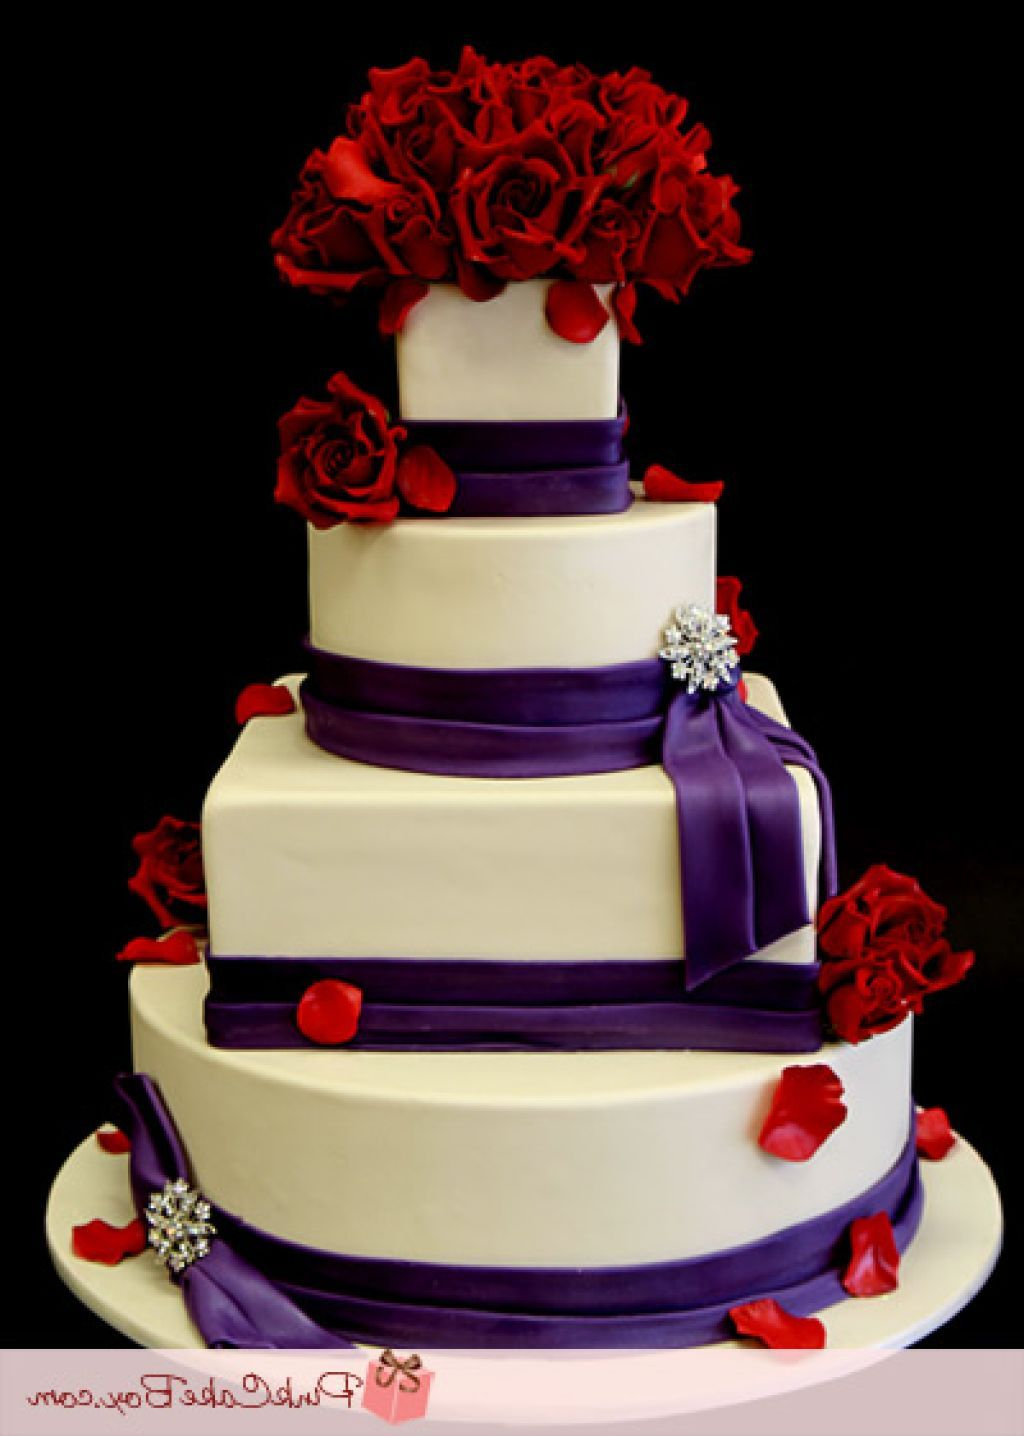 Romantic Red And Purple Wedding Cakes 13 Wedding Cake Red